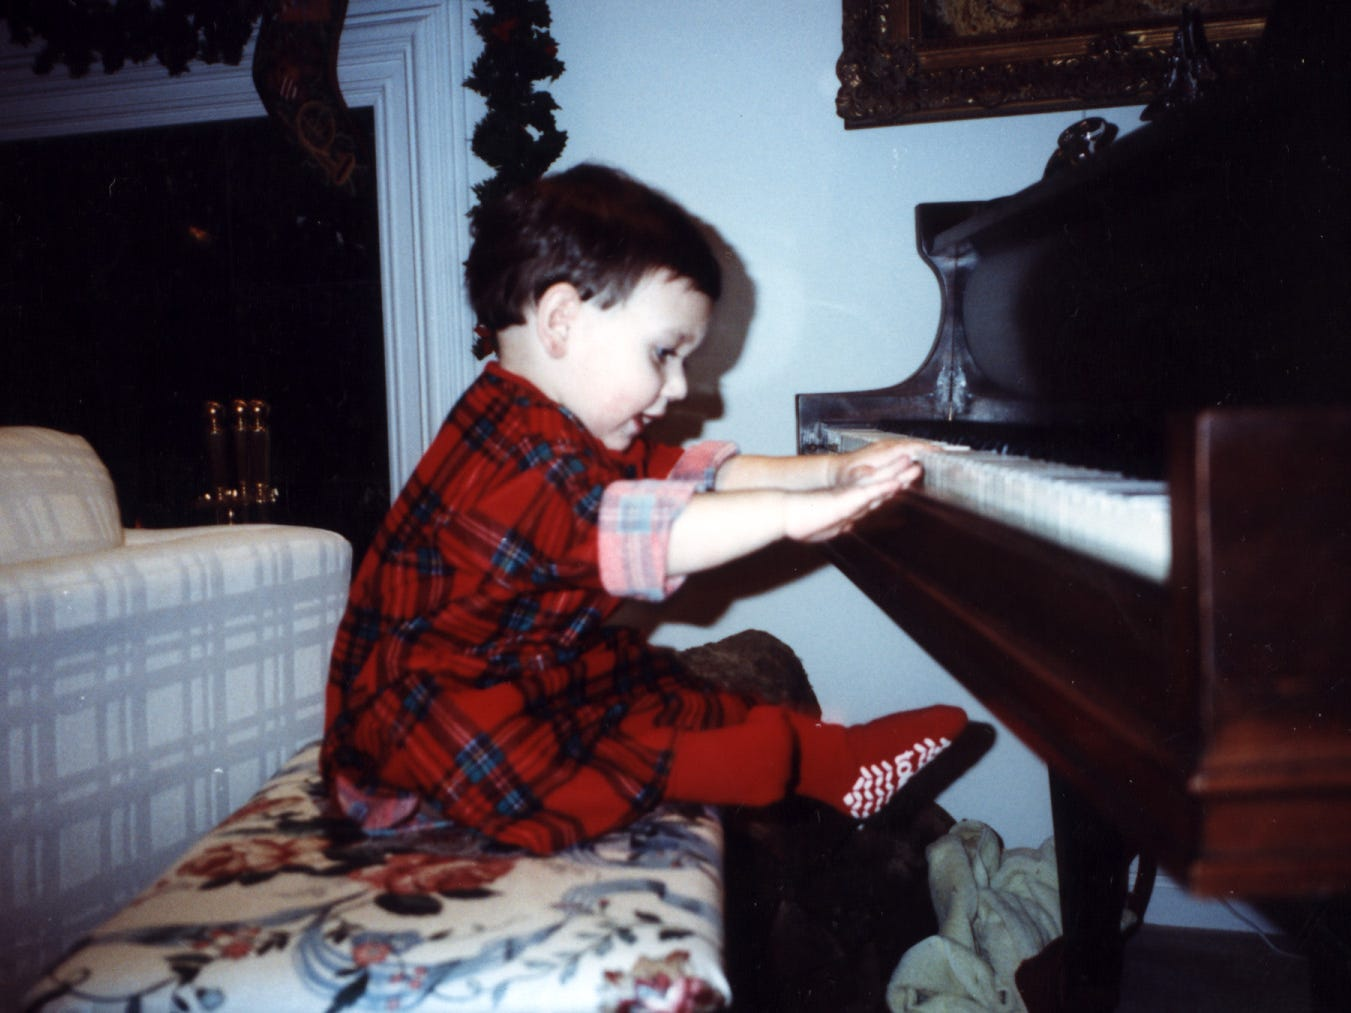 Teddy Geiger 'playing' the piano at a tender age.